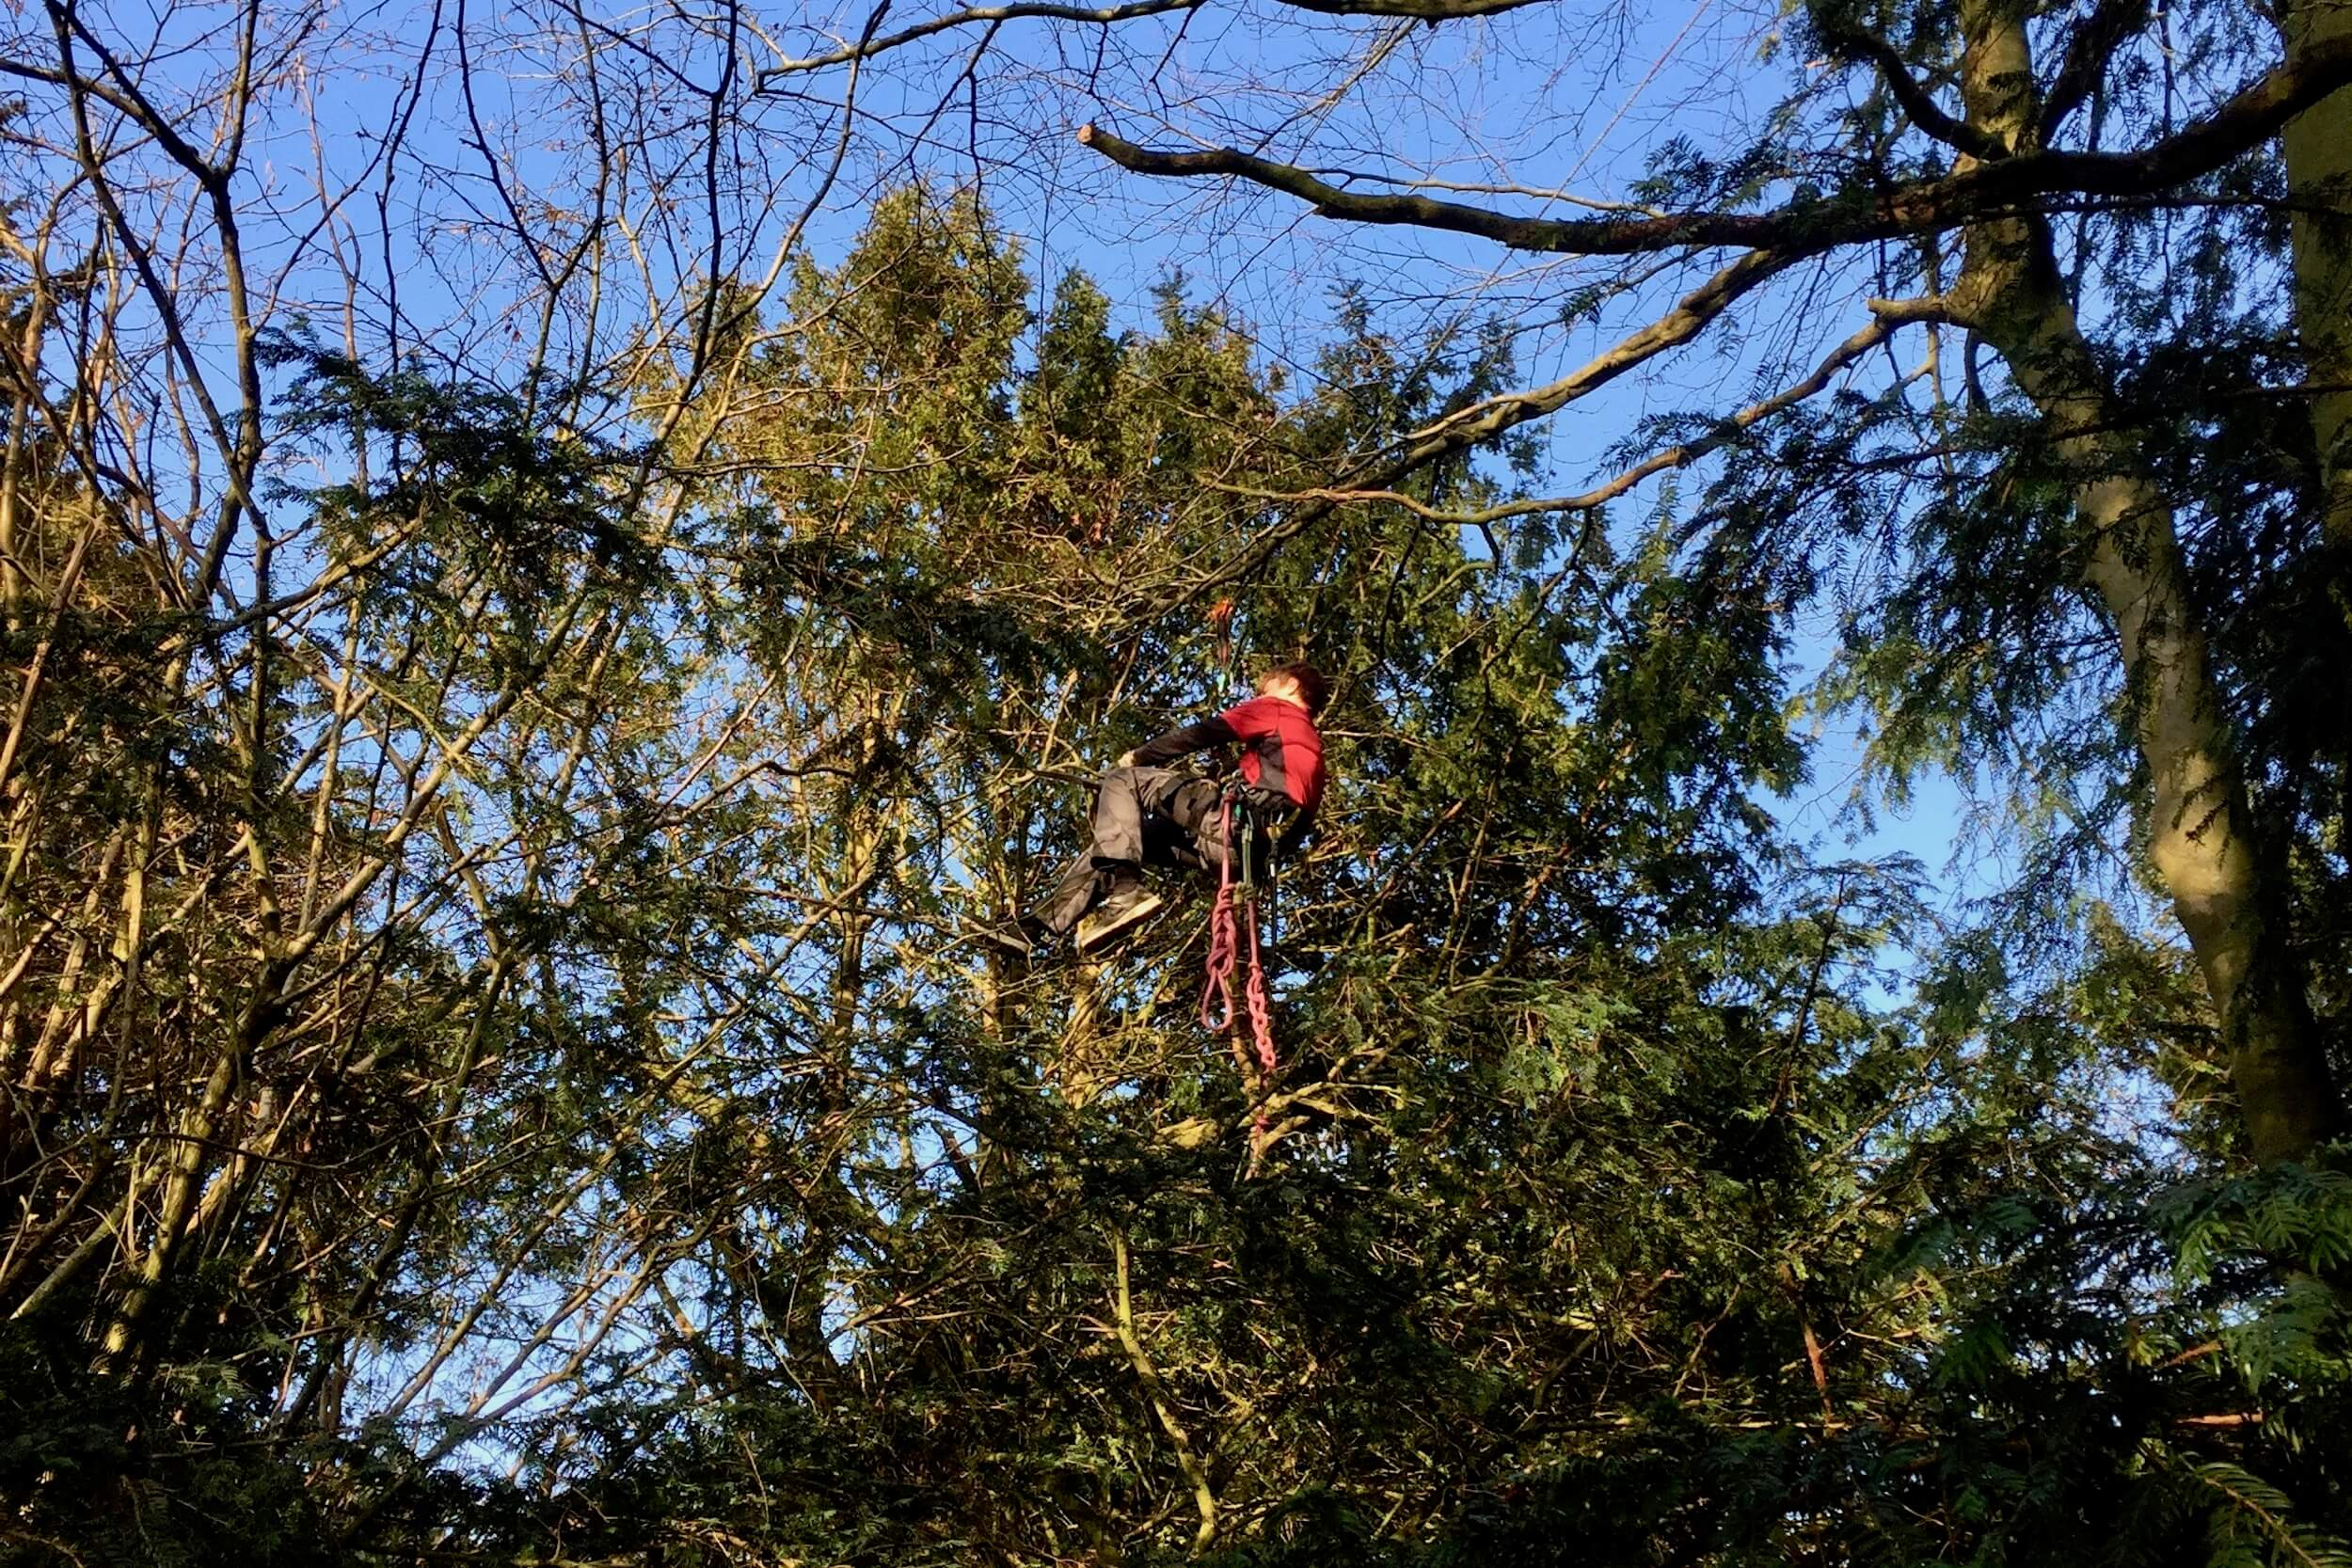 Tree Climber suspended